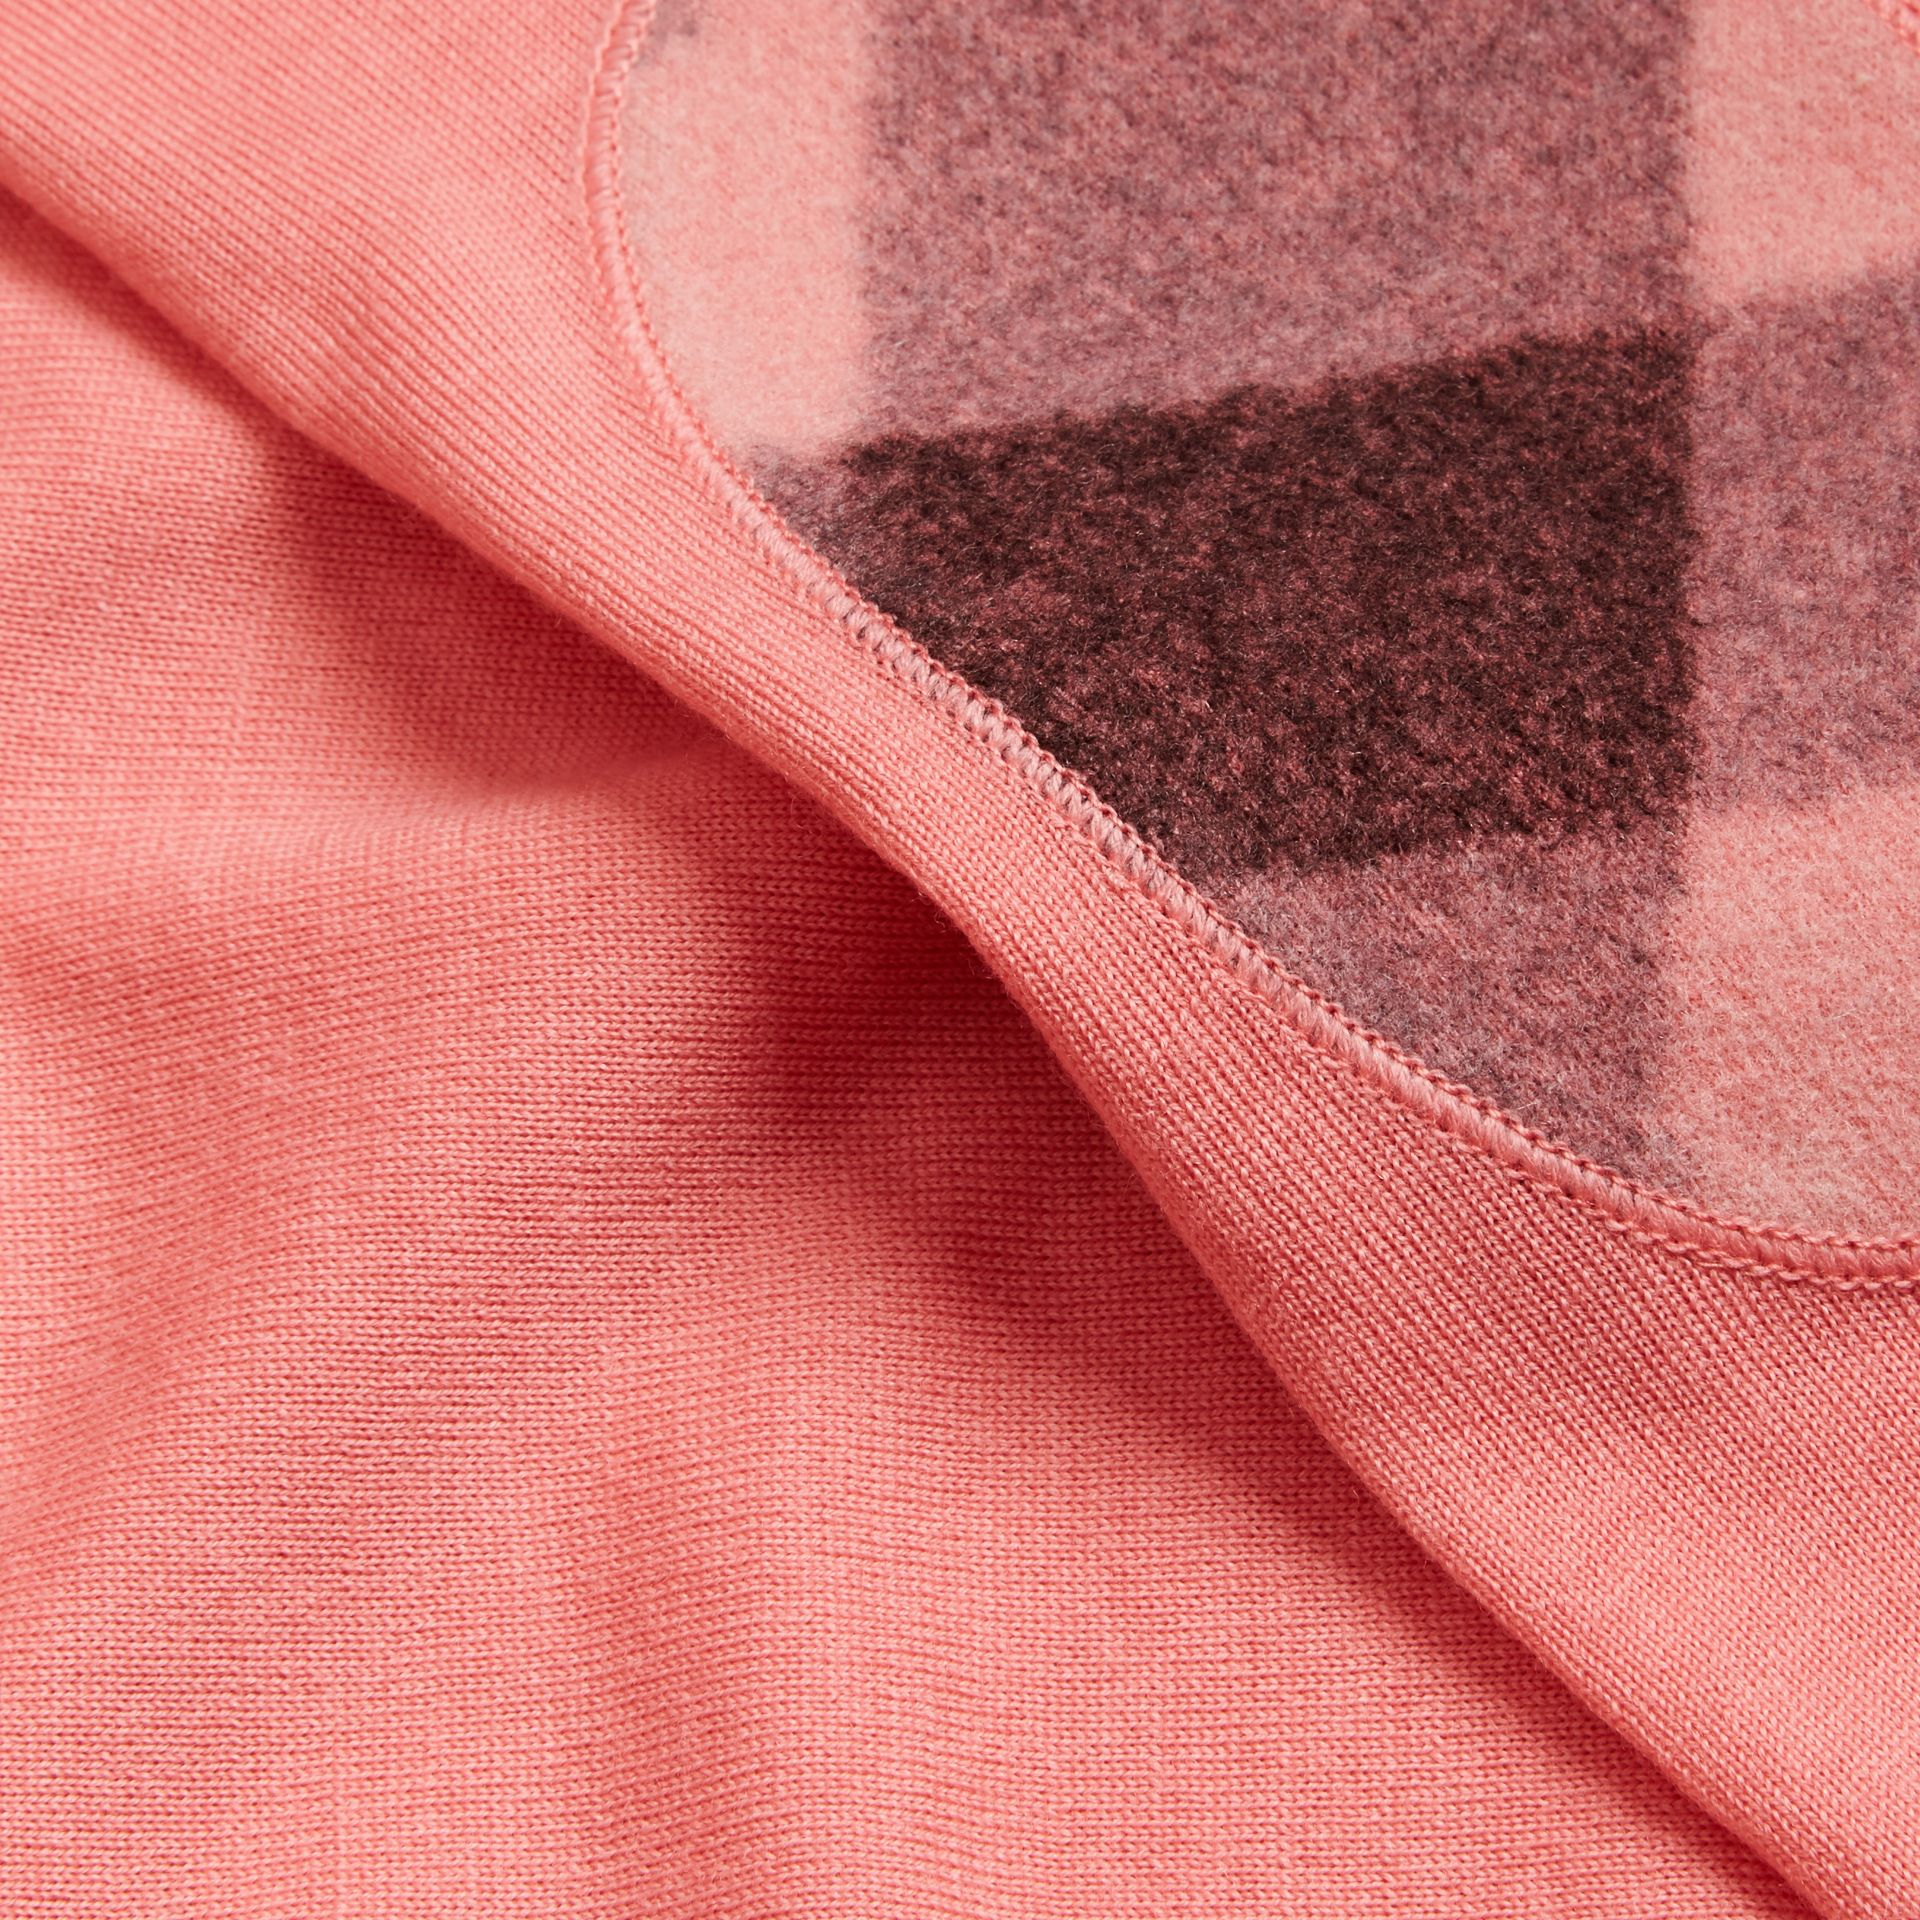 Check Detail Merino Wool Crew Neck Sweater Pale Rose Pink - gallery image 2